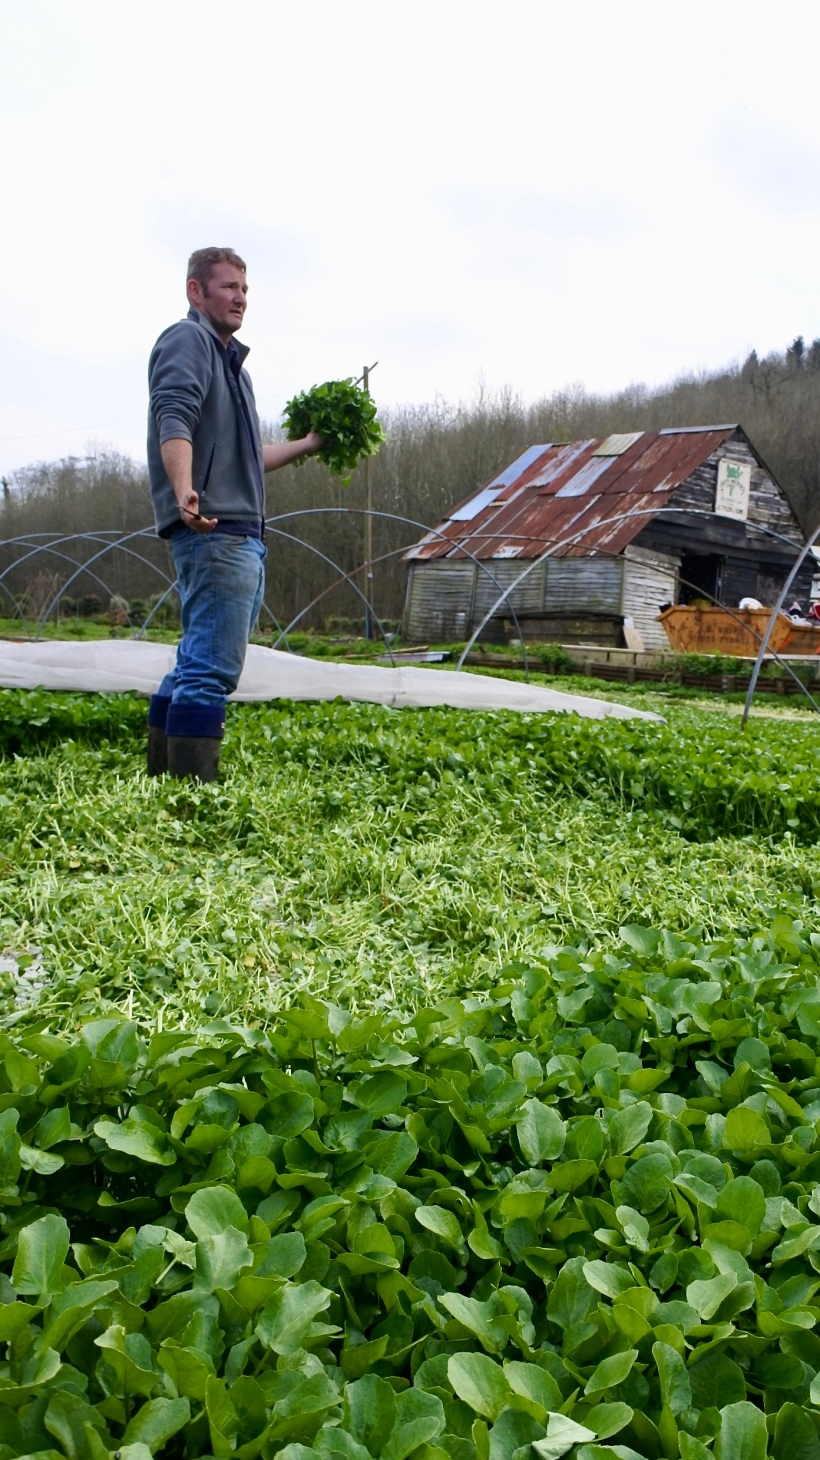 Watercress farmer, the last of his kind